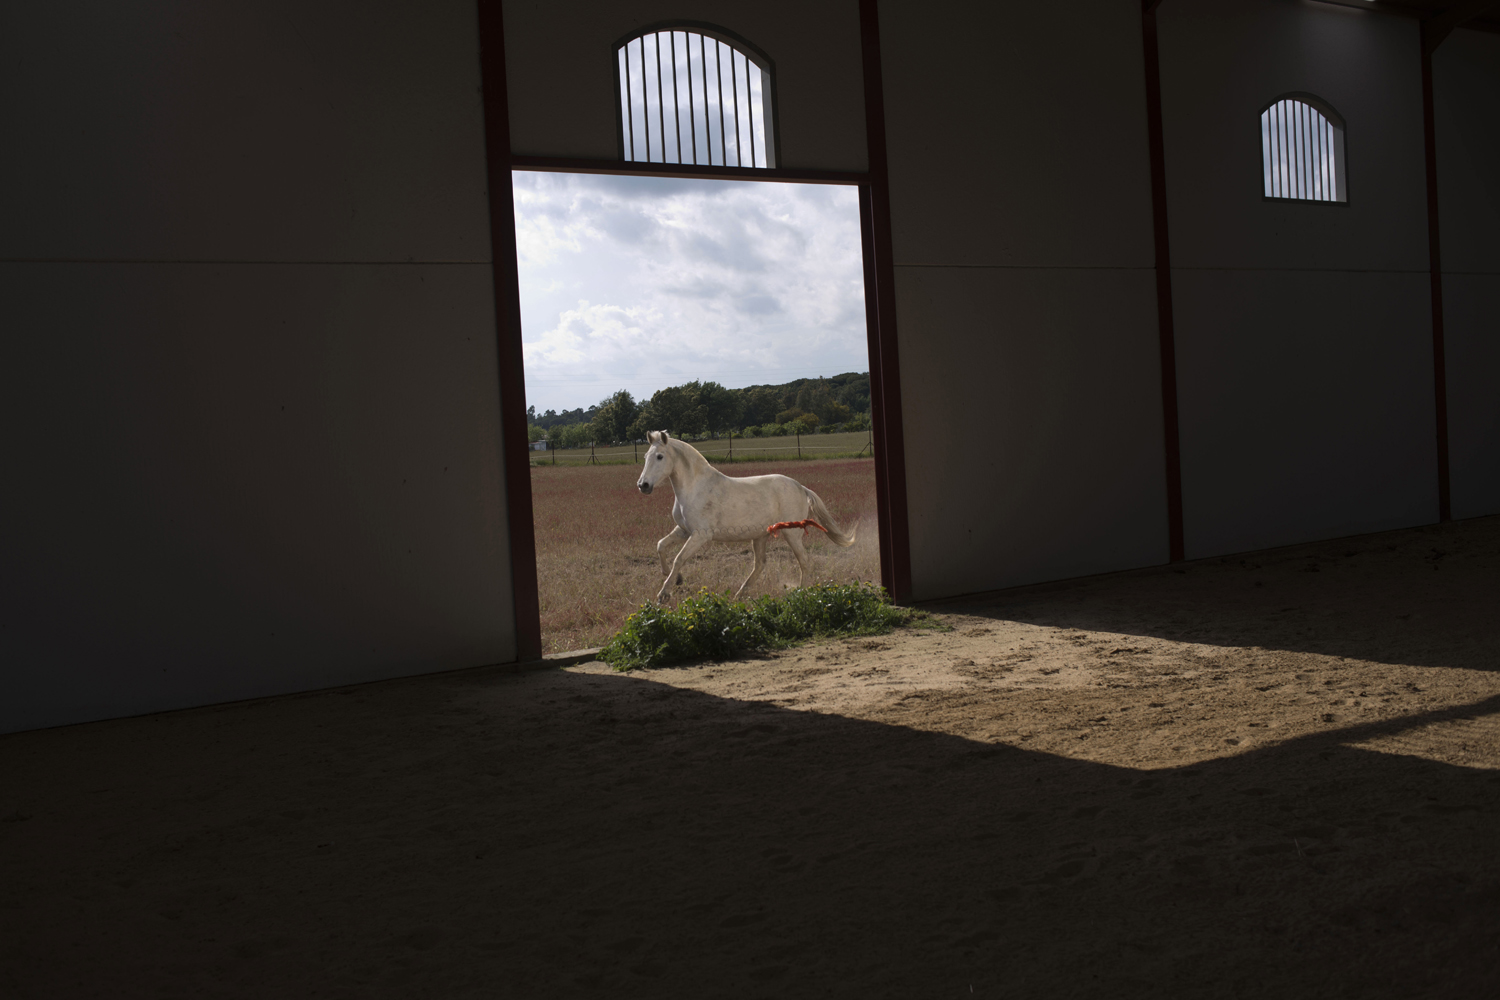 April 8, 2013. A ''Pura Raza Espanola'' or Pure Spanish Breed mare belonging to breeder Francisco Jose Rodriguez runs next to the stable at  La Yeguada de Cuatro Vientos  ranch in Almonte, in the southern Spanish region of Andalusia.